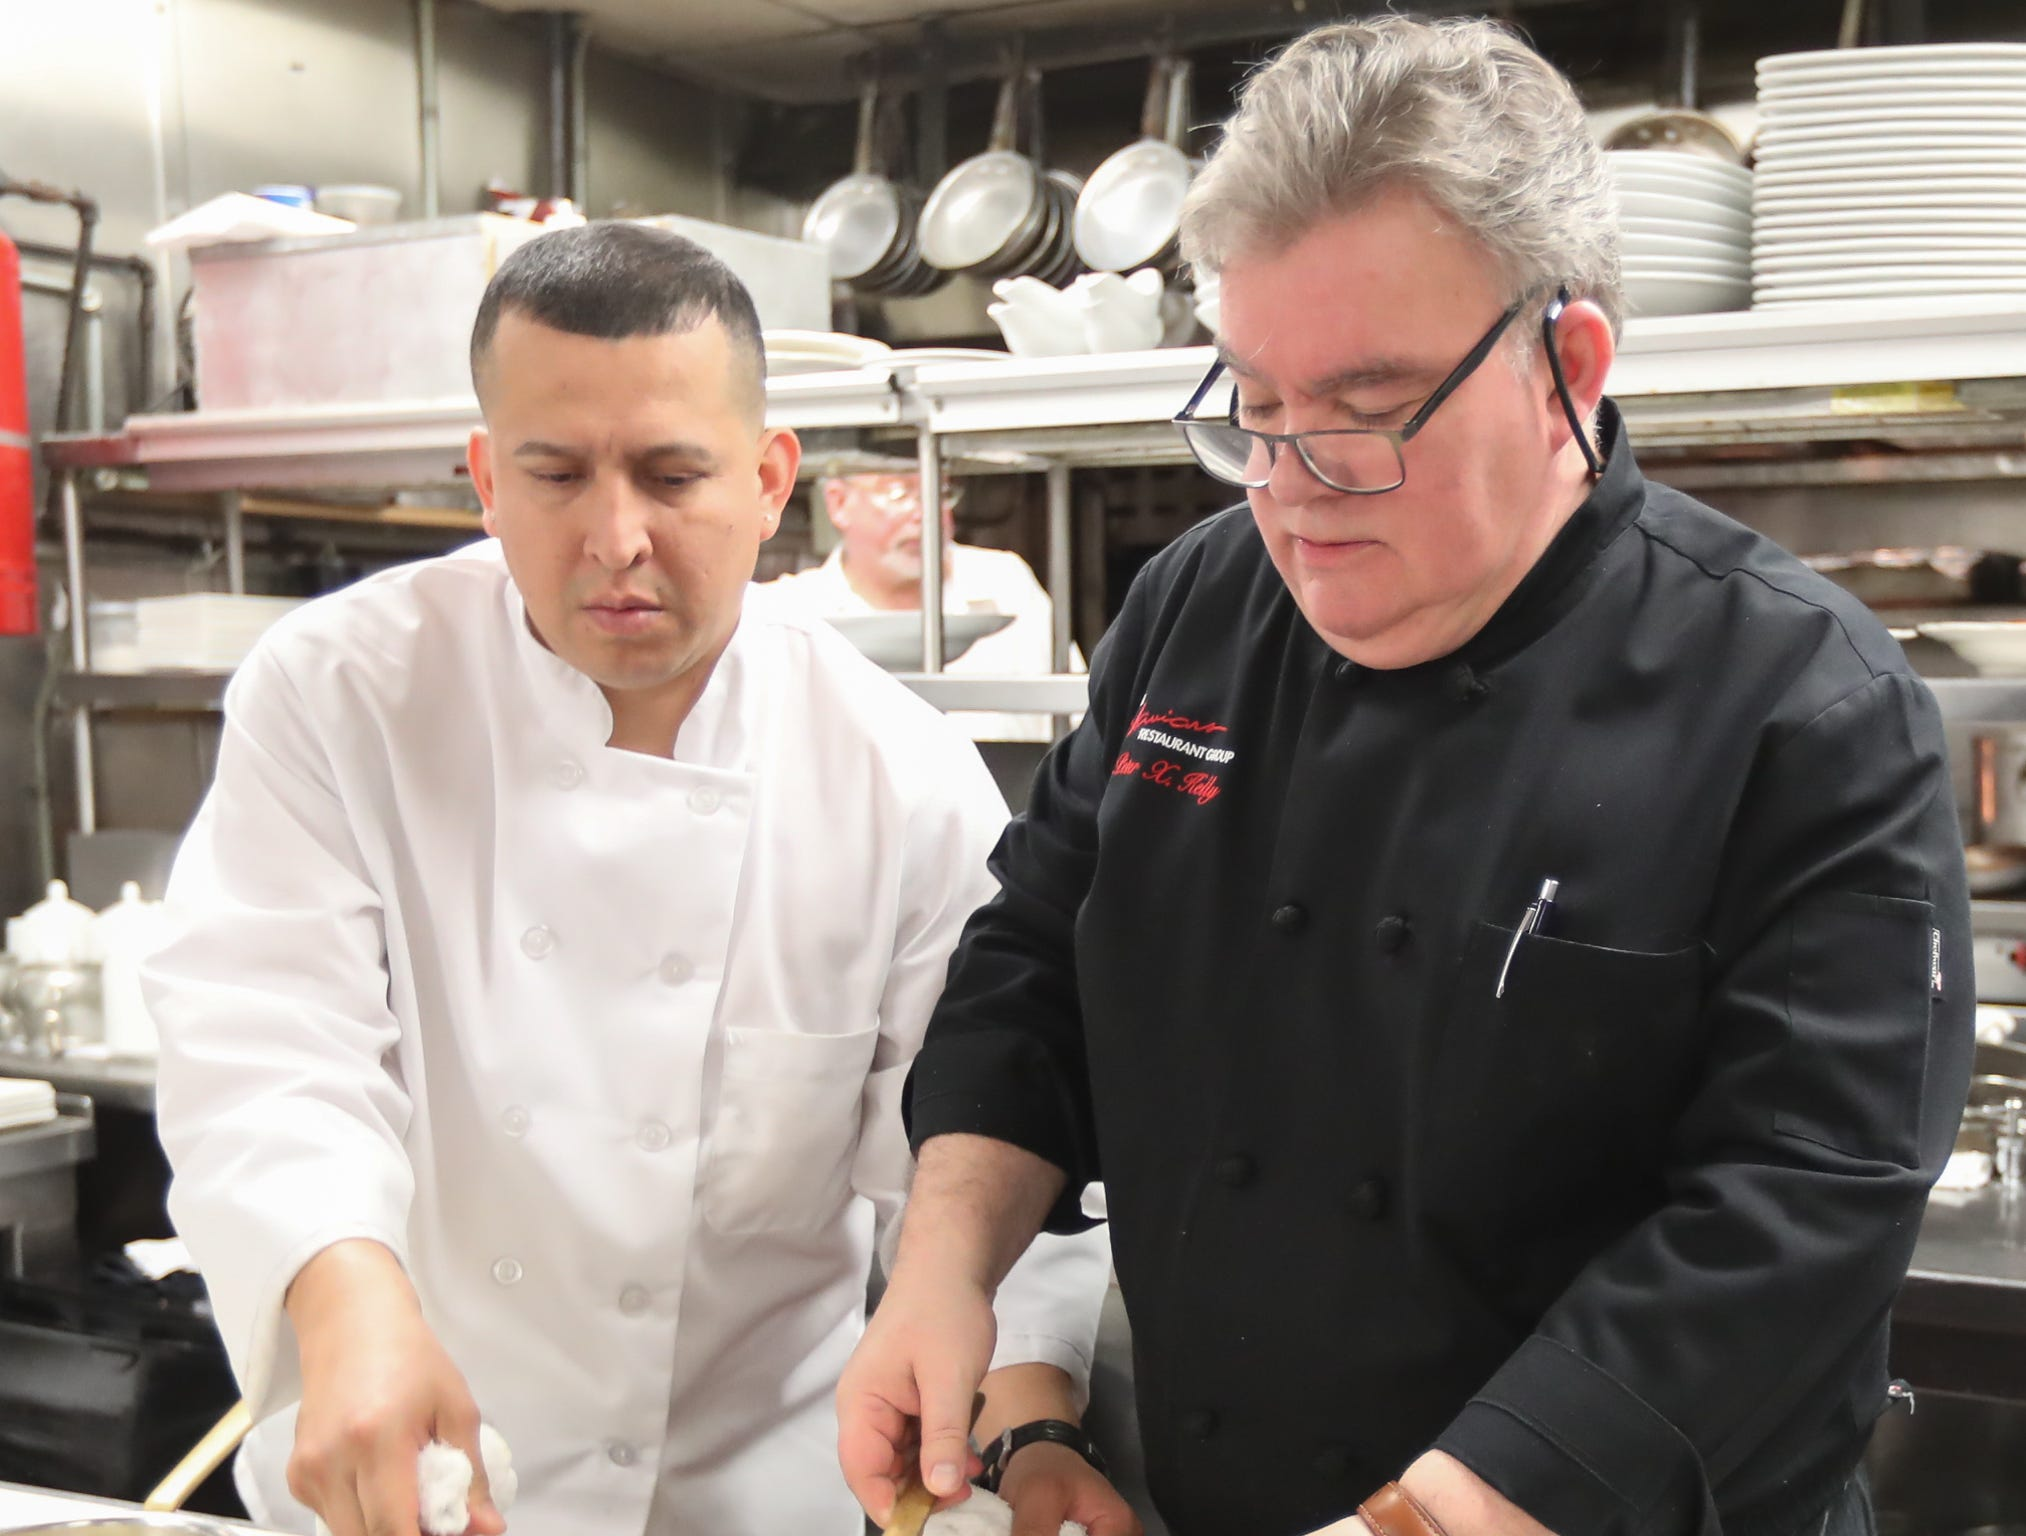 Chef Peter Kelly prepares Tortellini with Pecans and Prosciutto to be served at Sunday brunch at Restaurant X in Congers on Sunday, January 6, 2019.